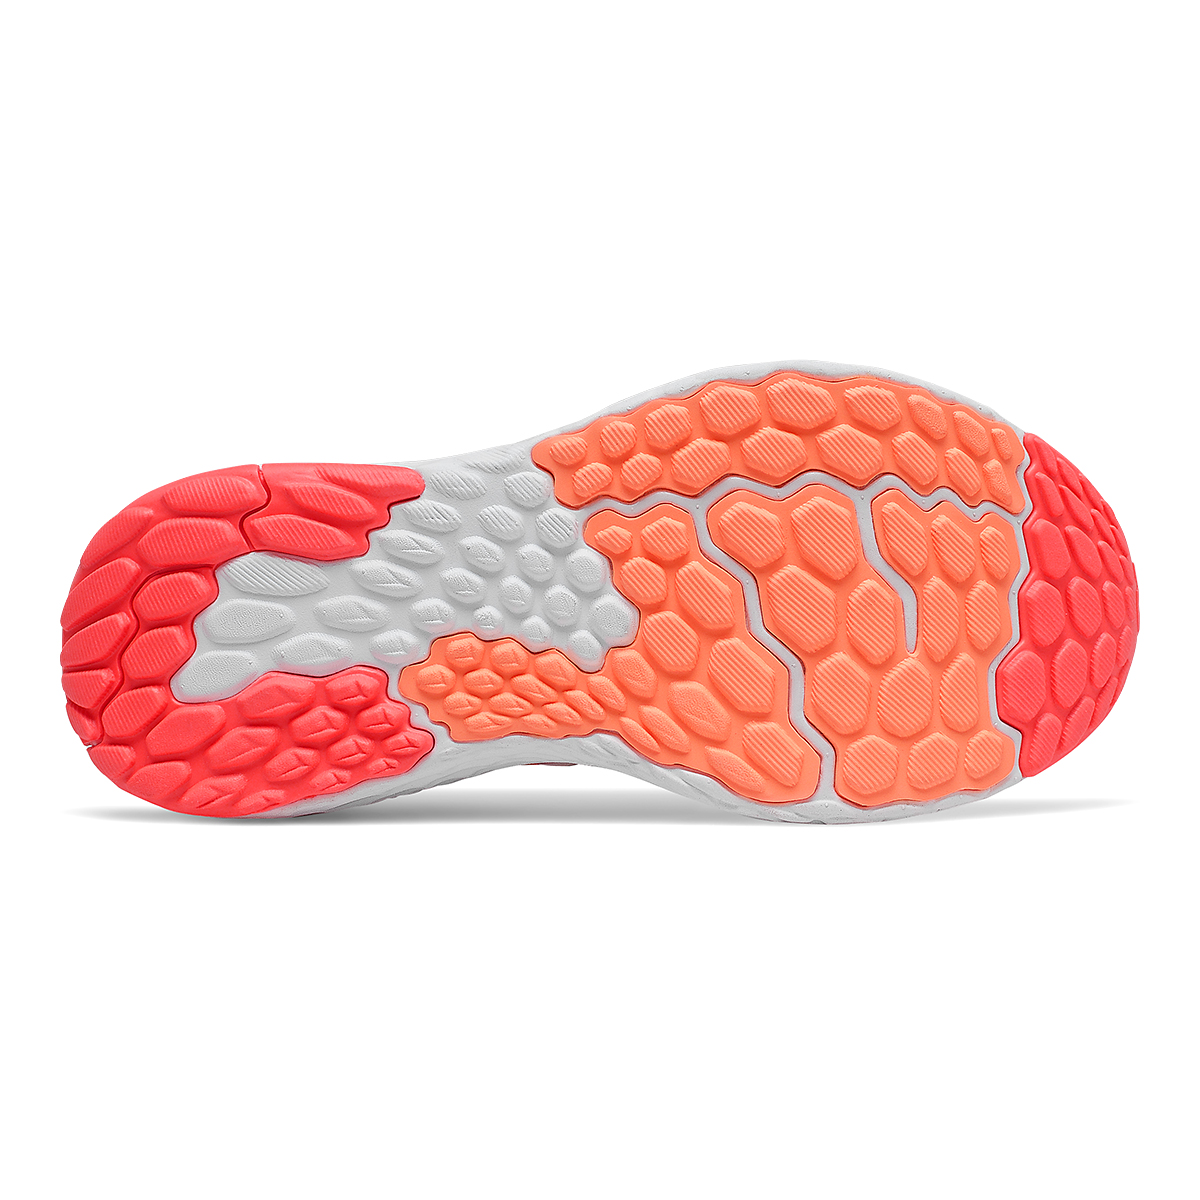 Women's New Balance 1080v11 Running Shoe - Color: Citrus Punch/Vivid Coral - Size: 5 - Width: Narrow, Citrus Punch/Vivid Coral, large, image 3